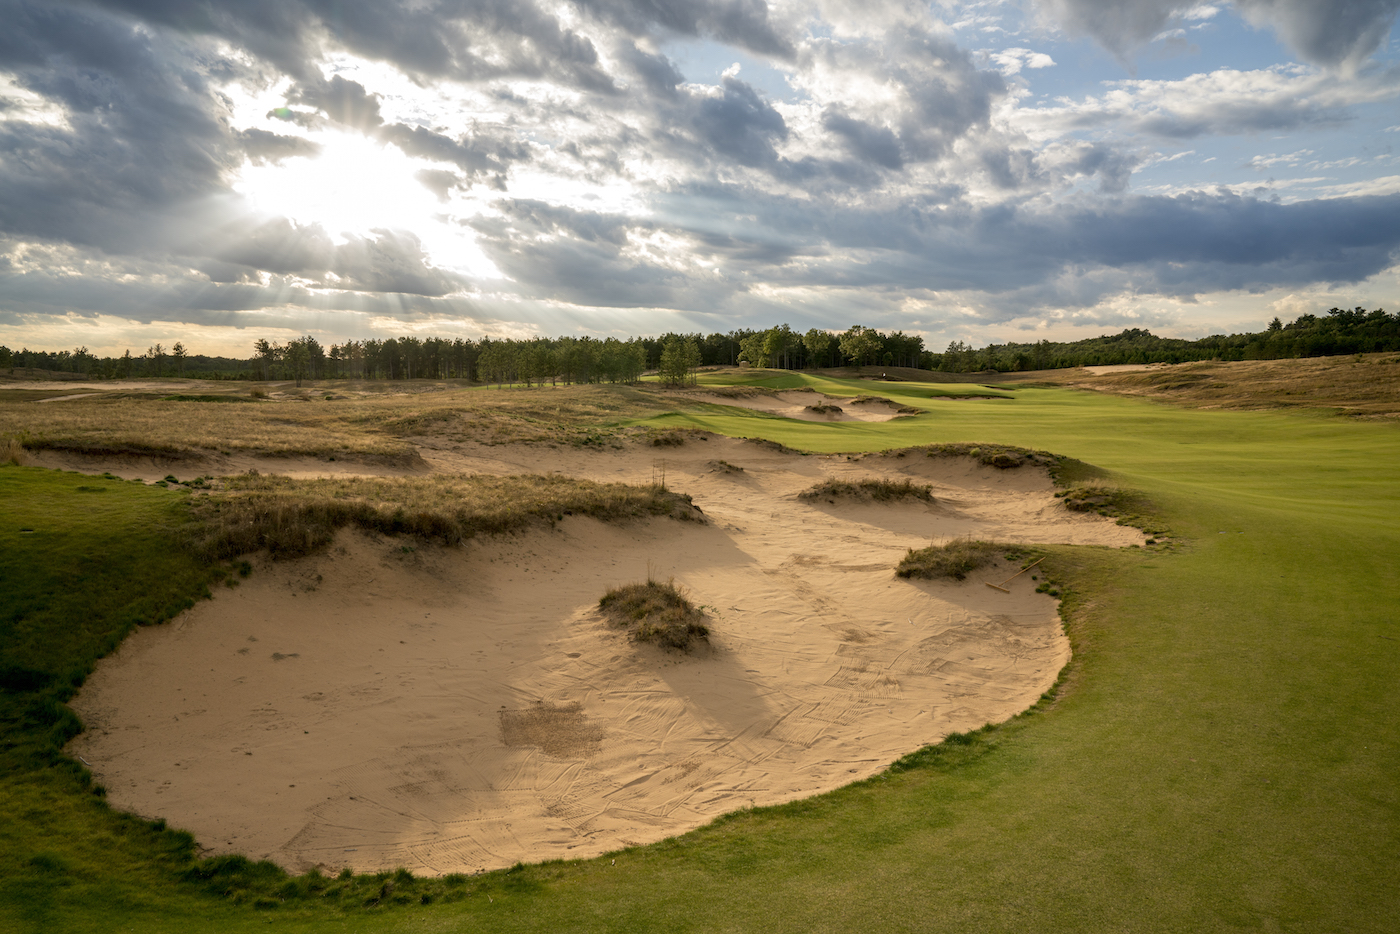 Sand+Valley+Hole+12+Sun+and+Clouds+Drama+copy.jpg